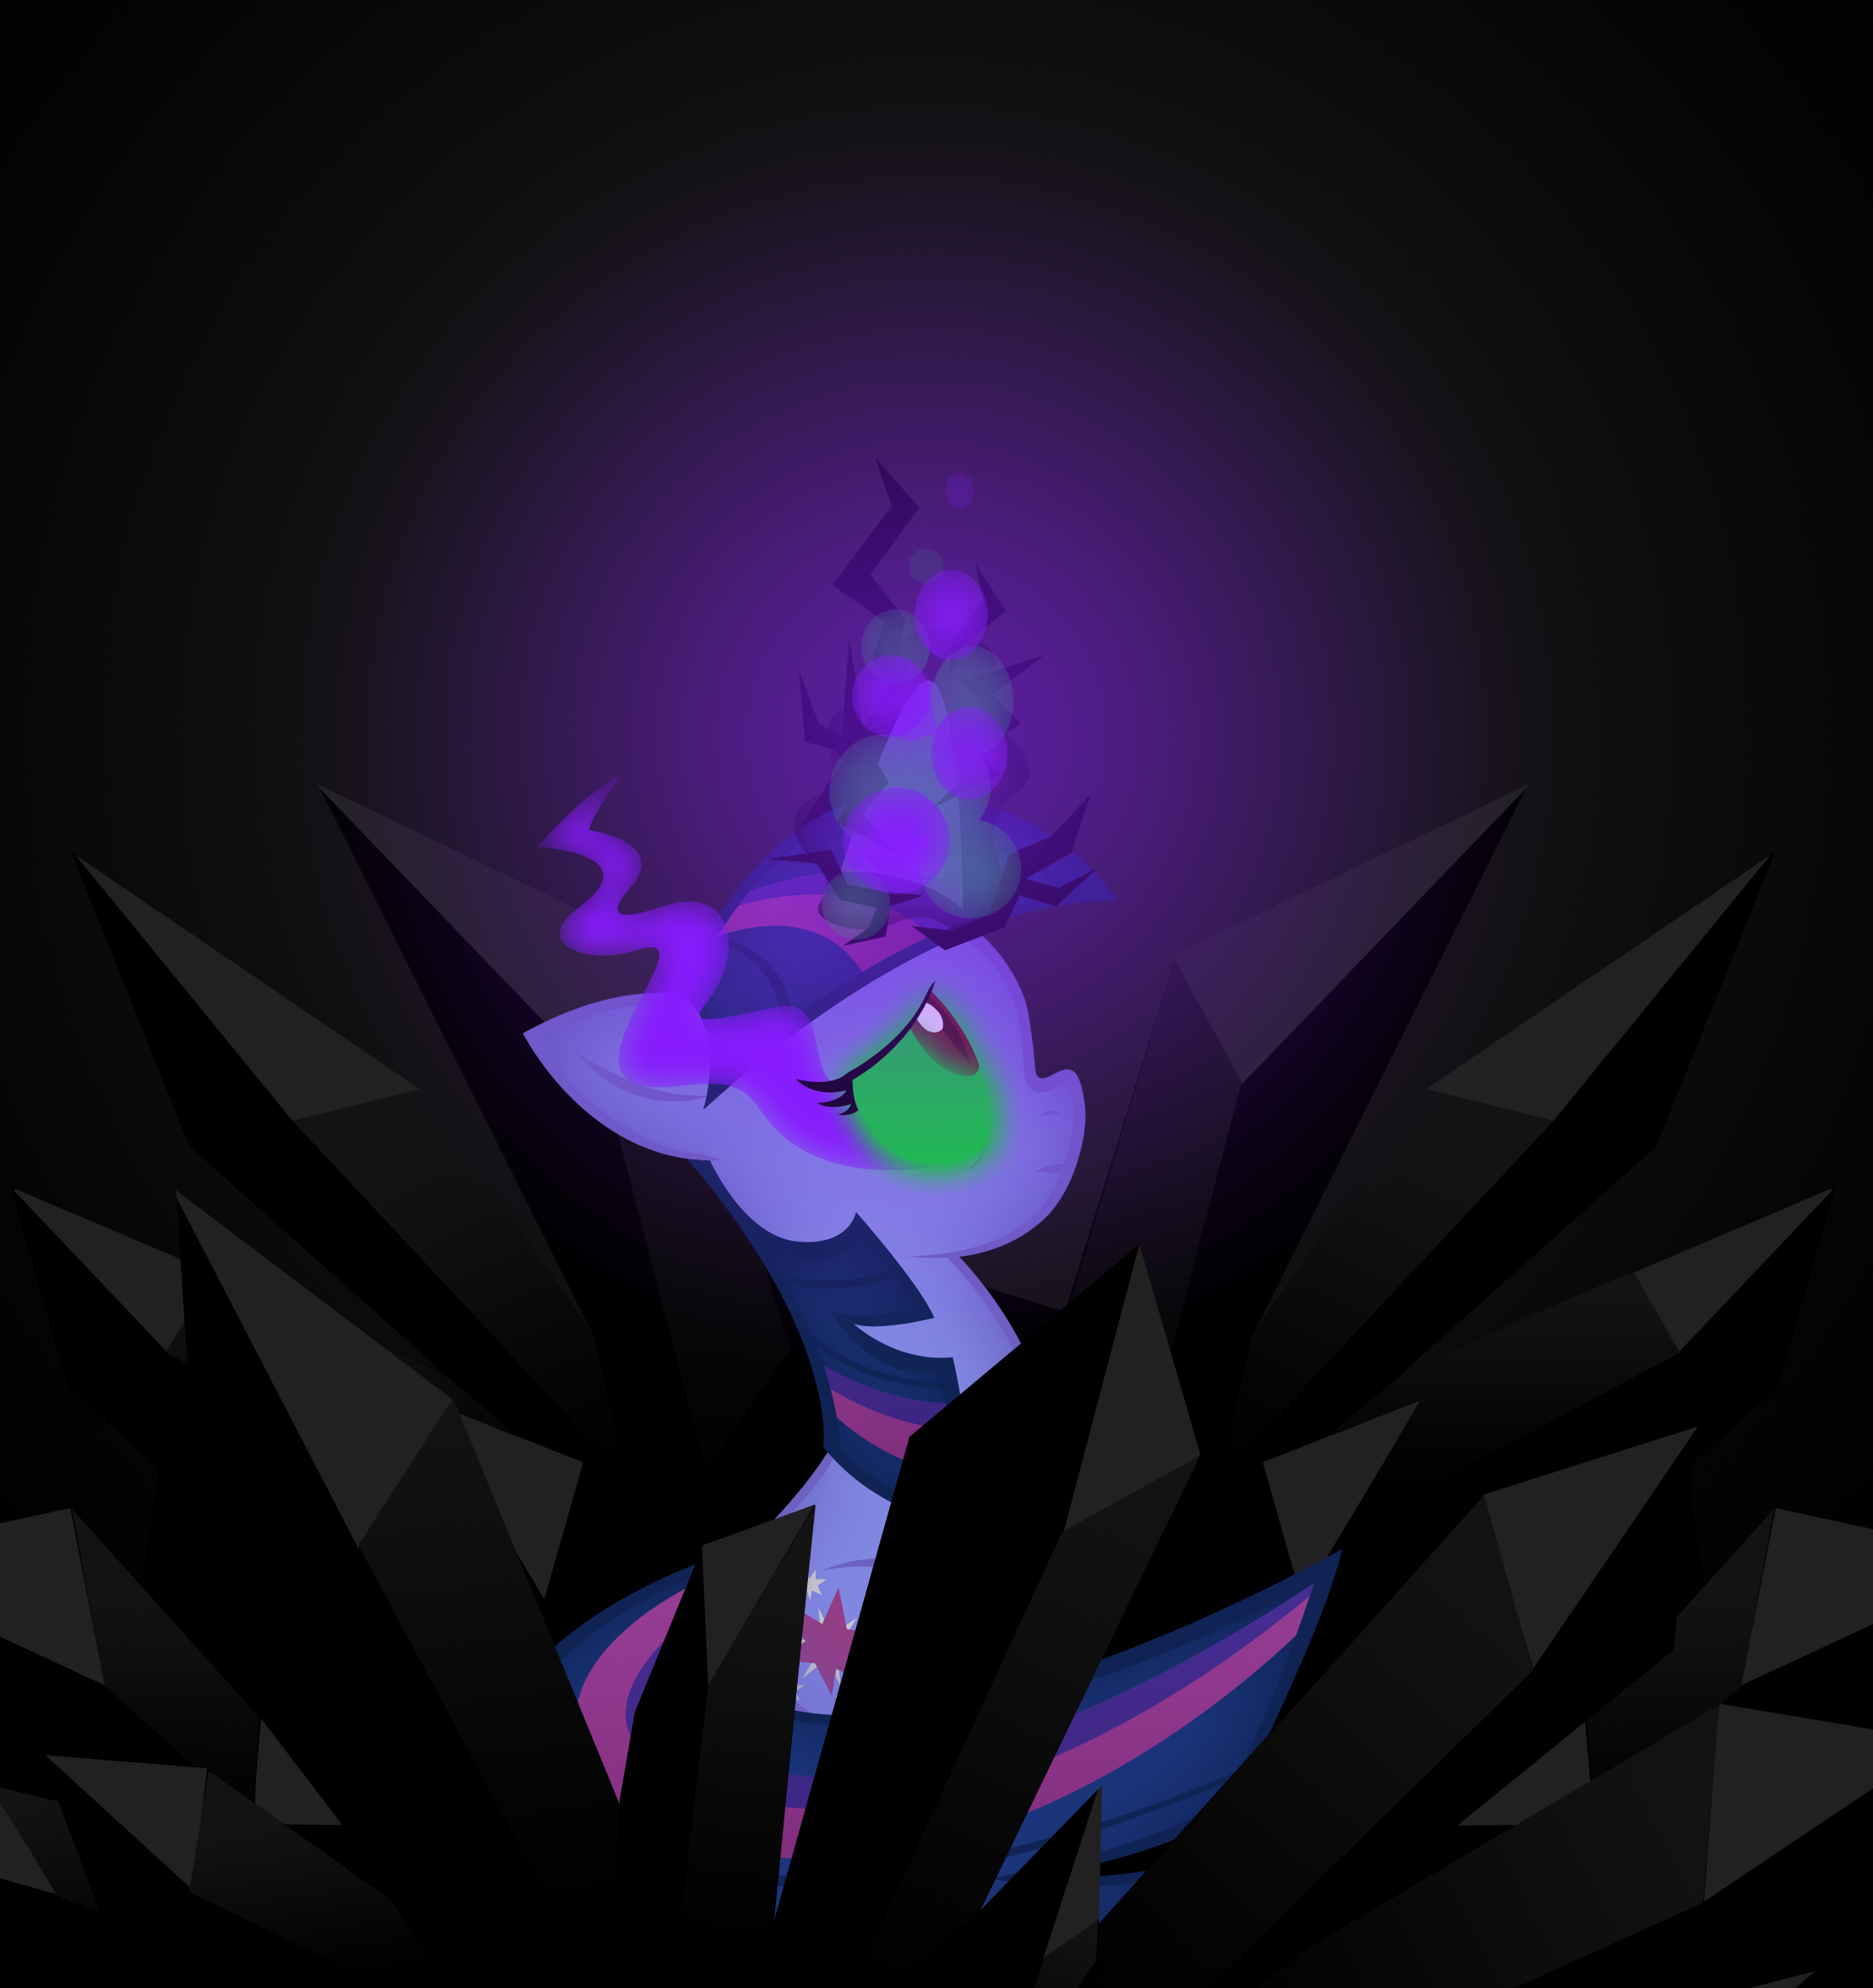 Drowning_In_shadows by OmegaSunBurst